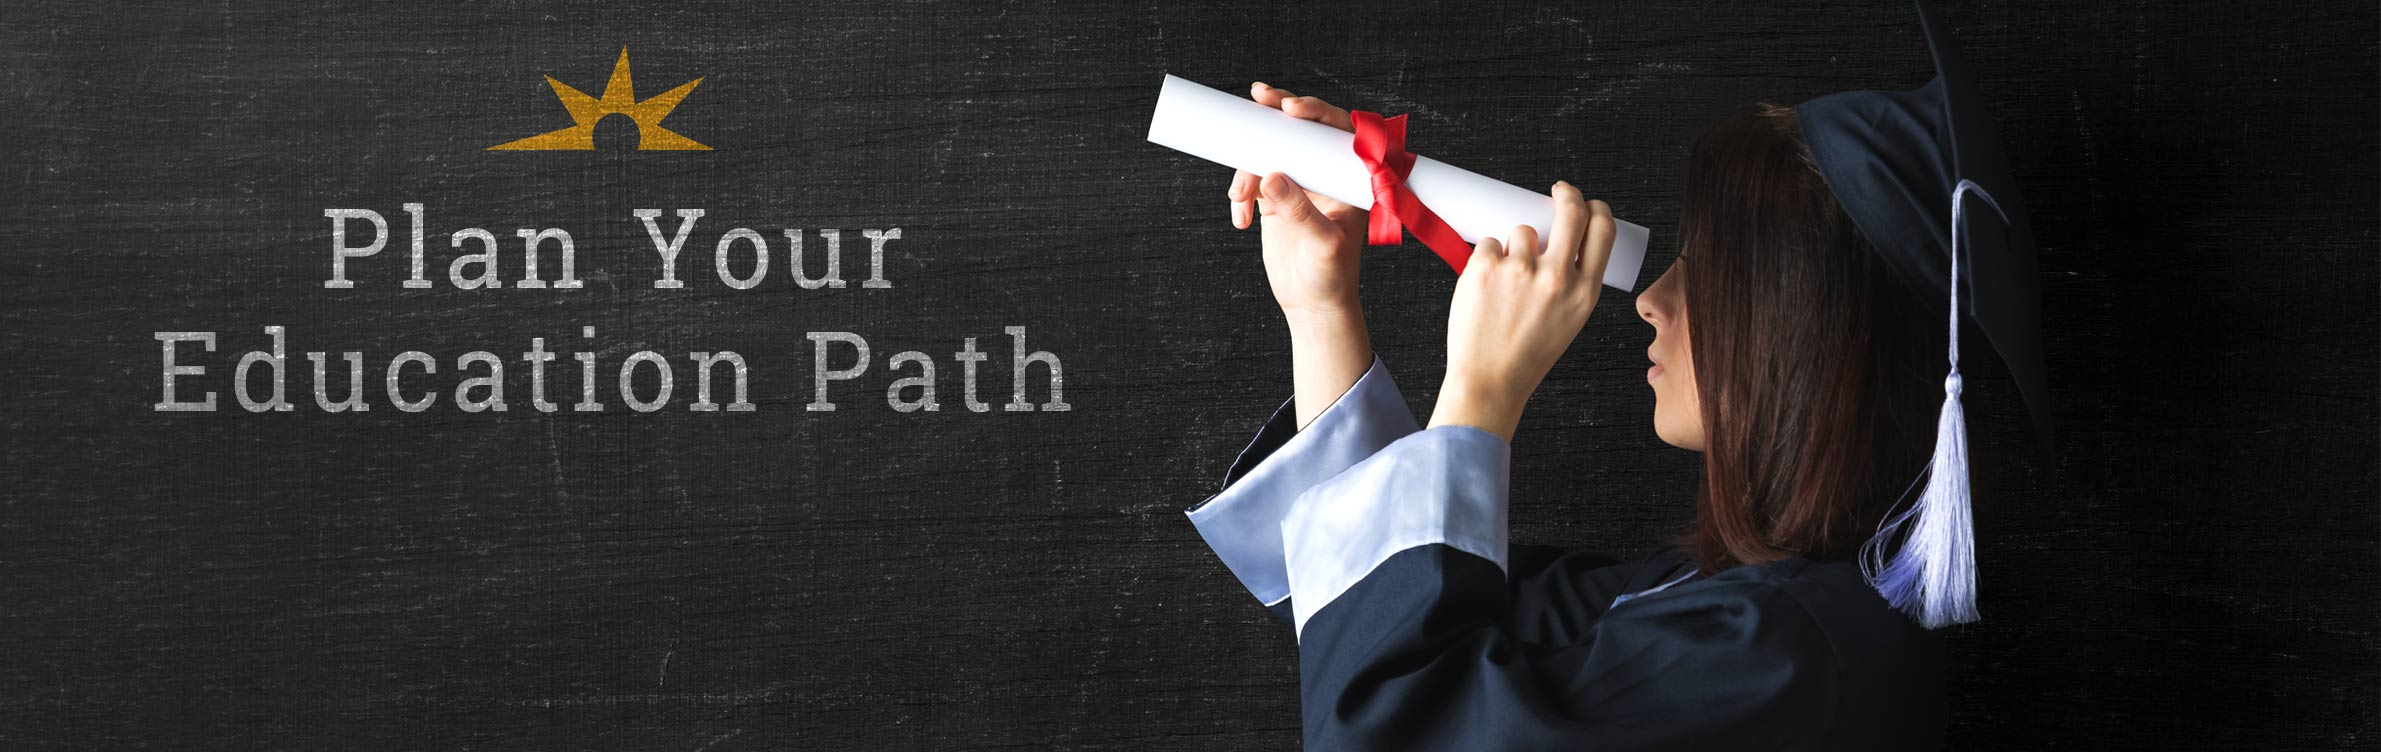 Plan Your Education Path